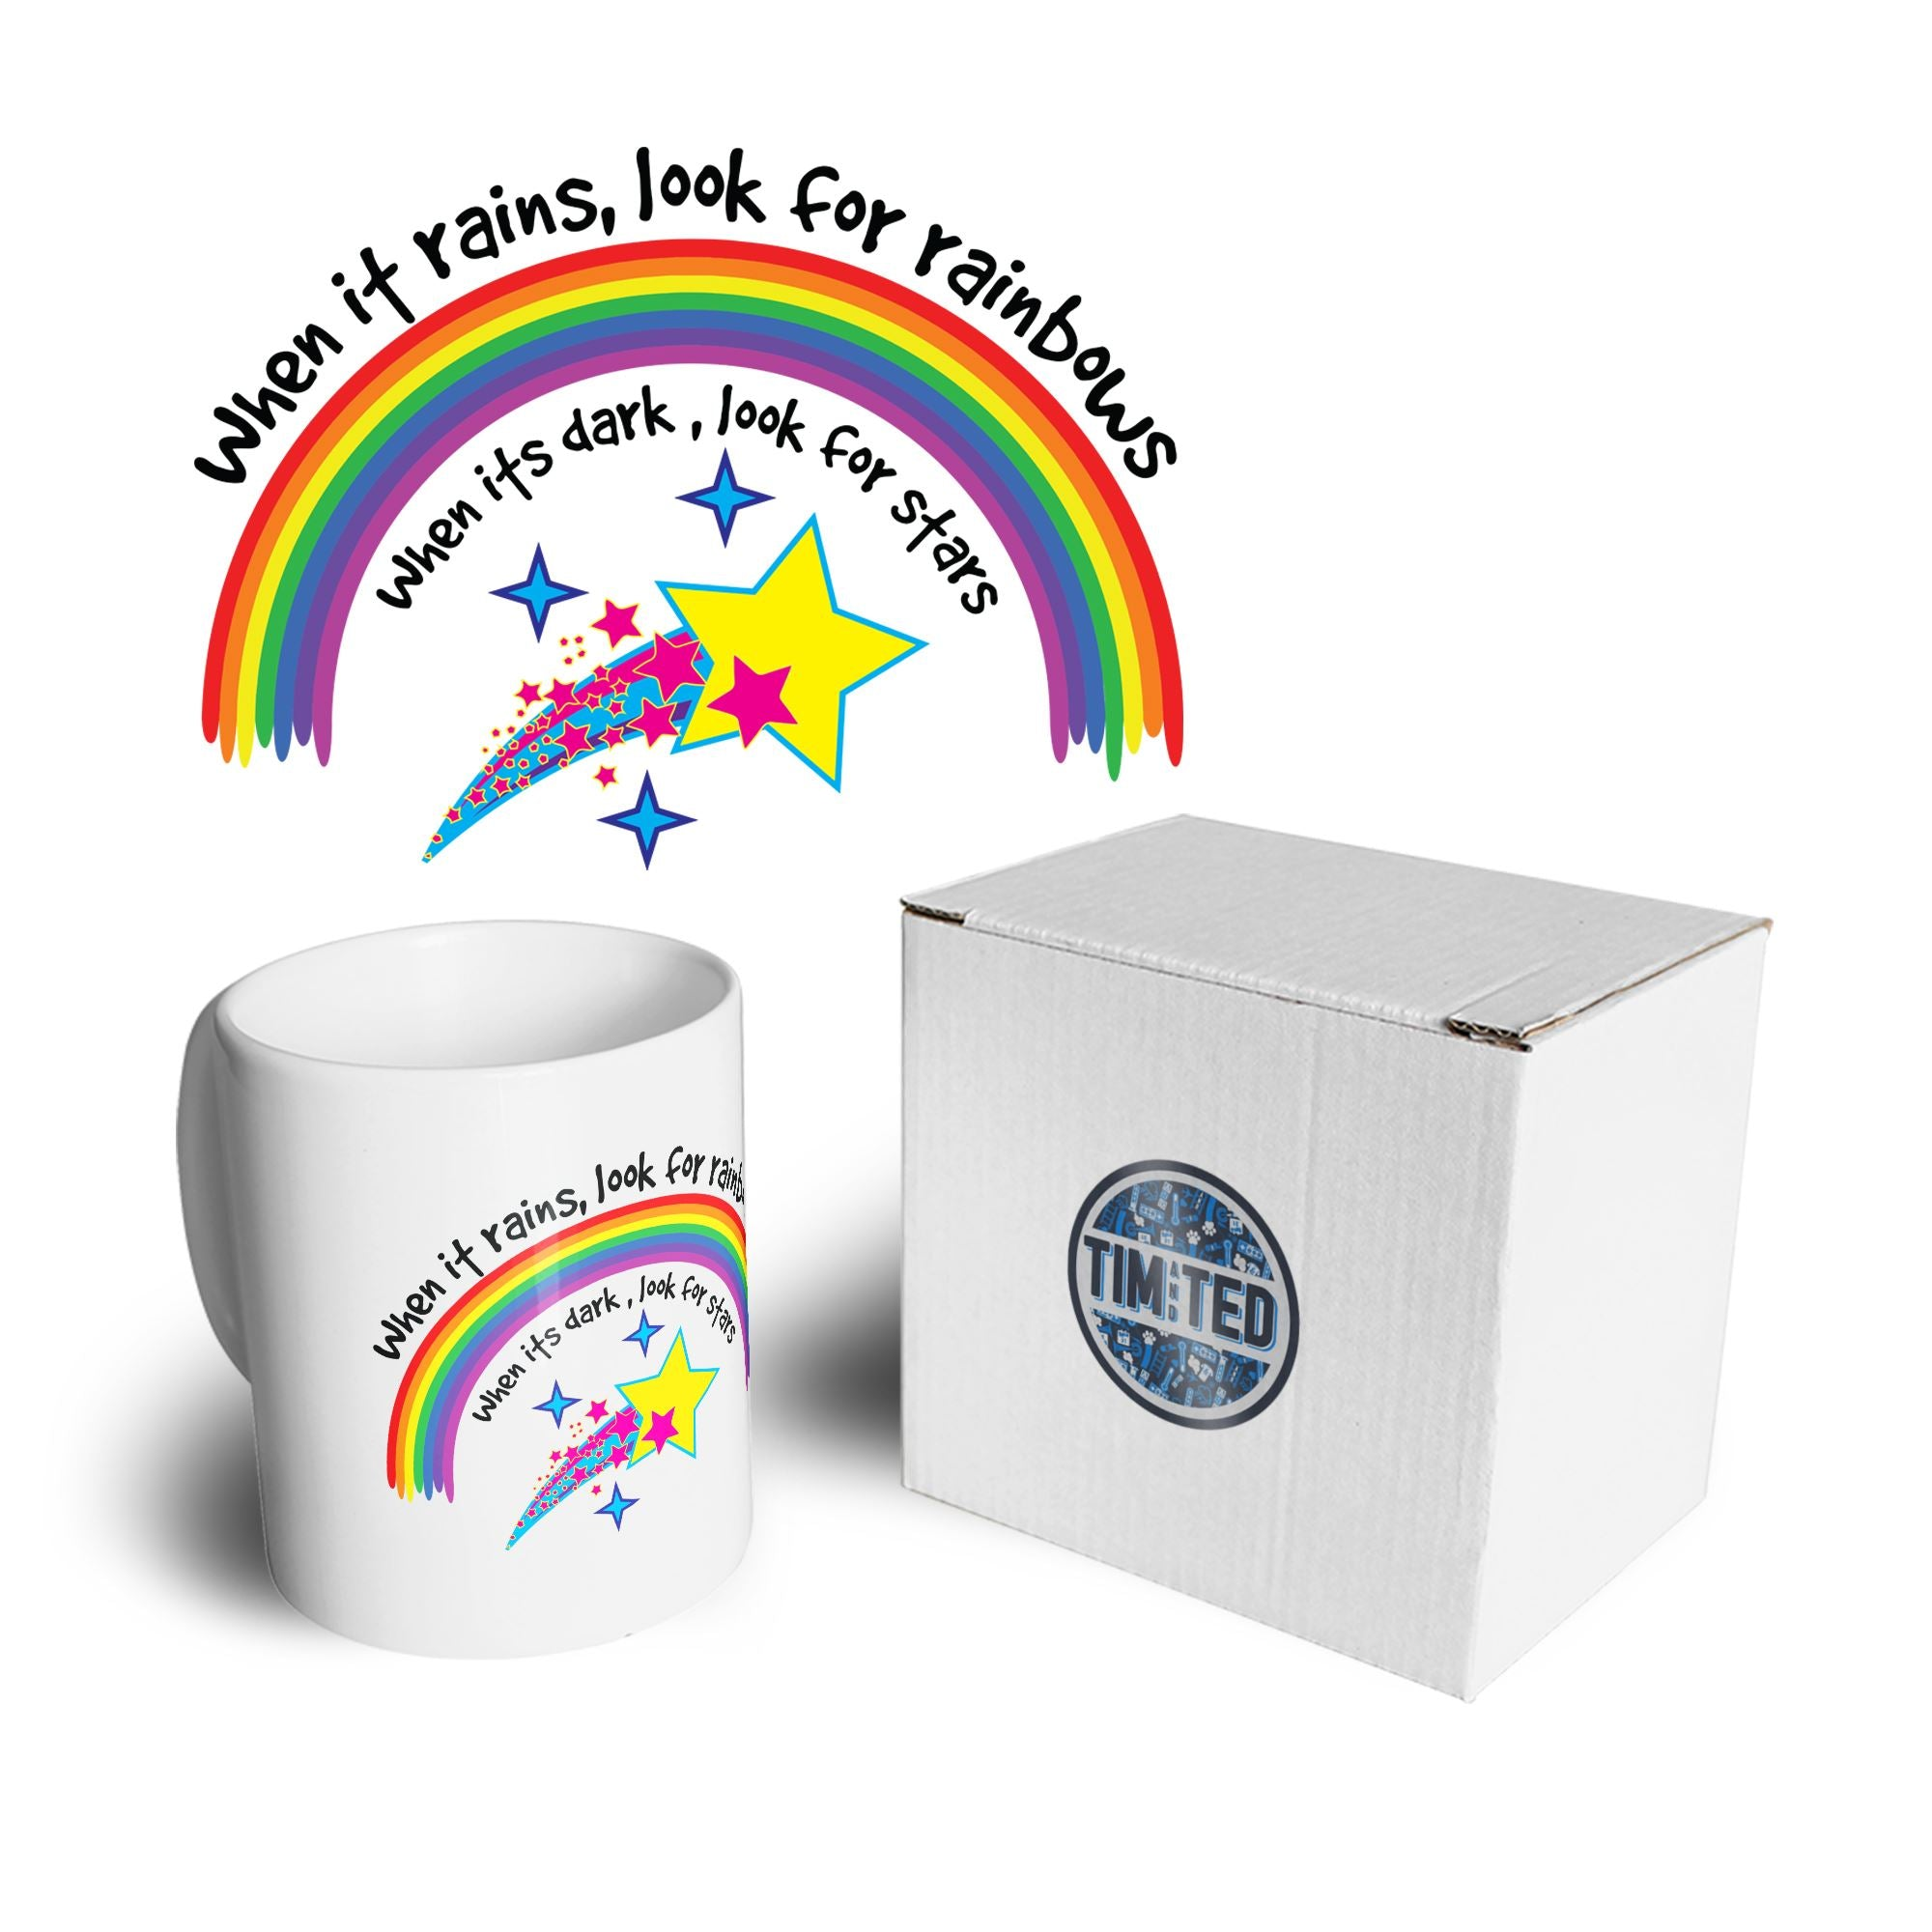 Inspirational Mug When It Rains, Look For Rainbows Coffee Tea Cup